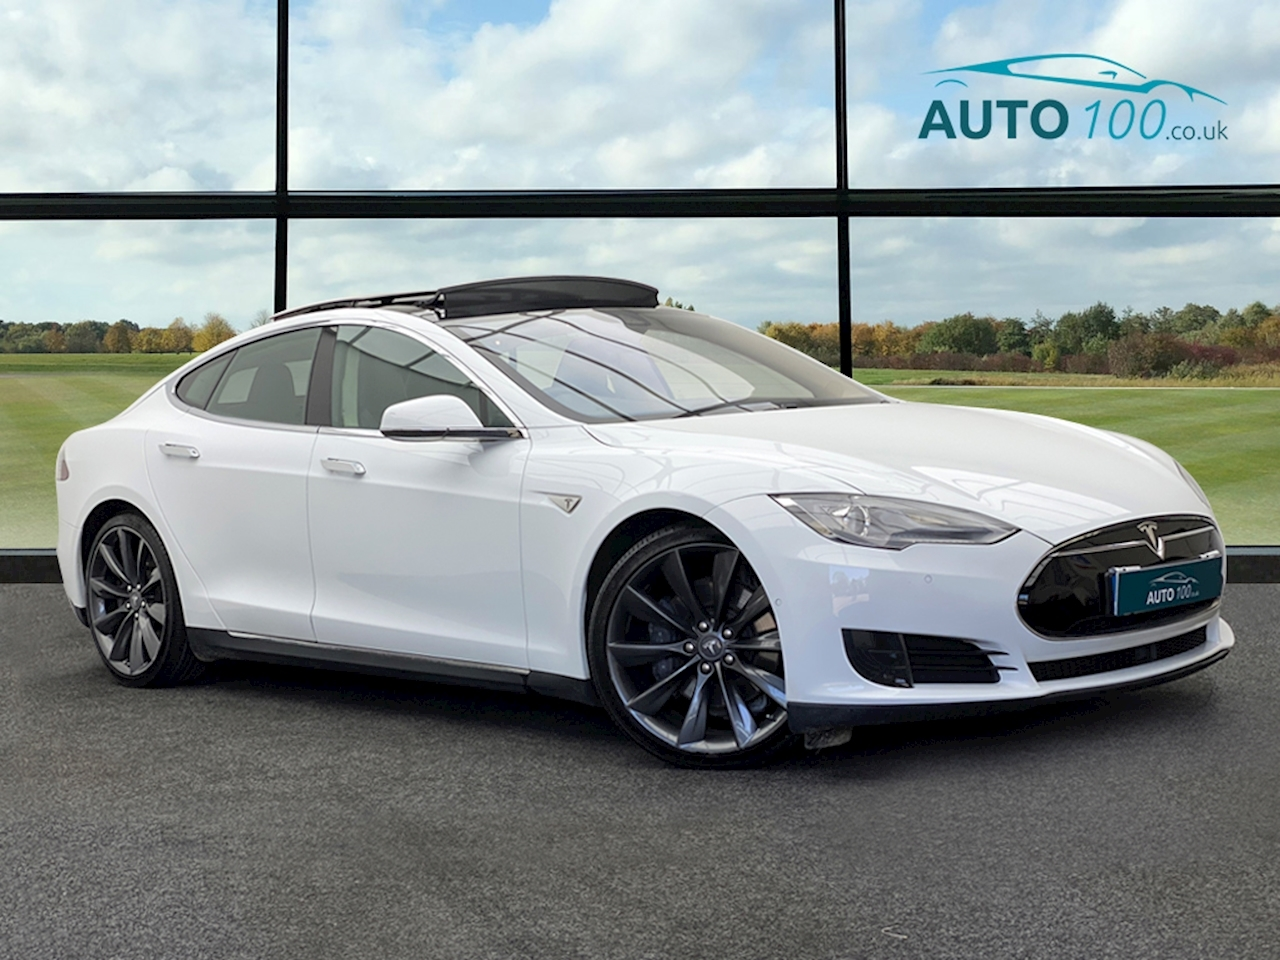 Tesla Other British All Models Limousine 0.0 Automatic Electric